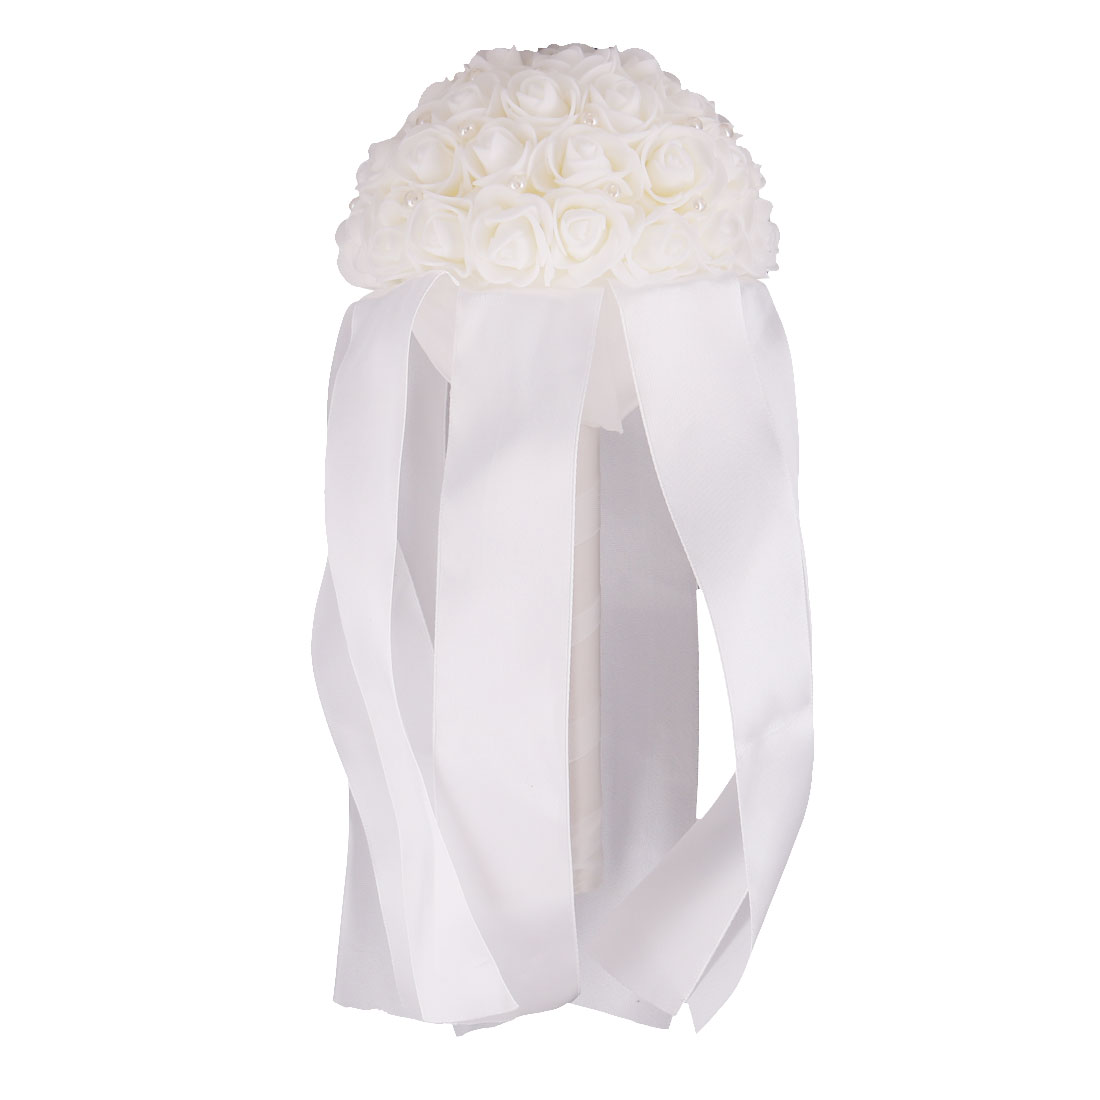 Bridal Wedding Party Foam Rose Flower Ribbon Beads Decor Handhold Bouquet White